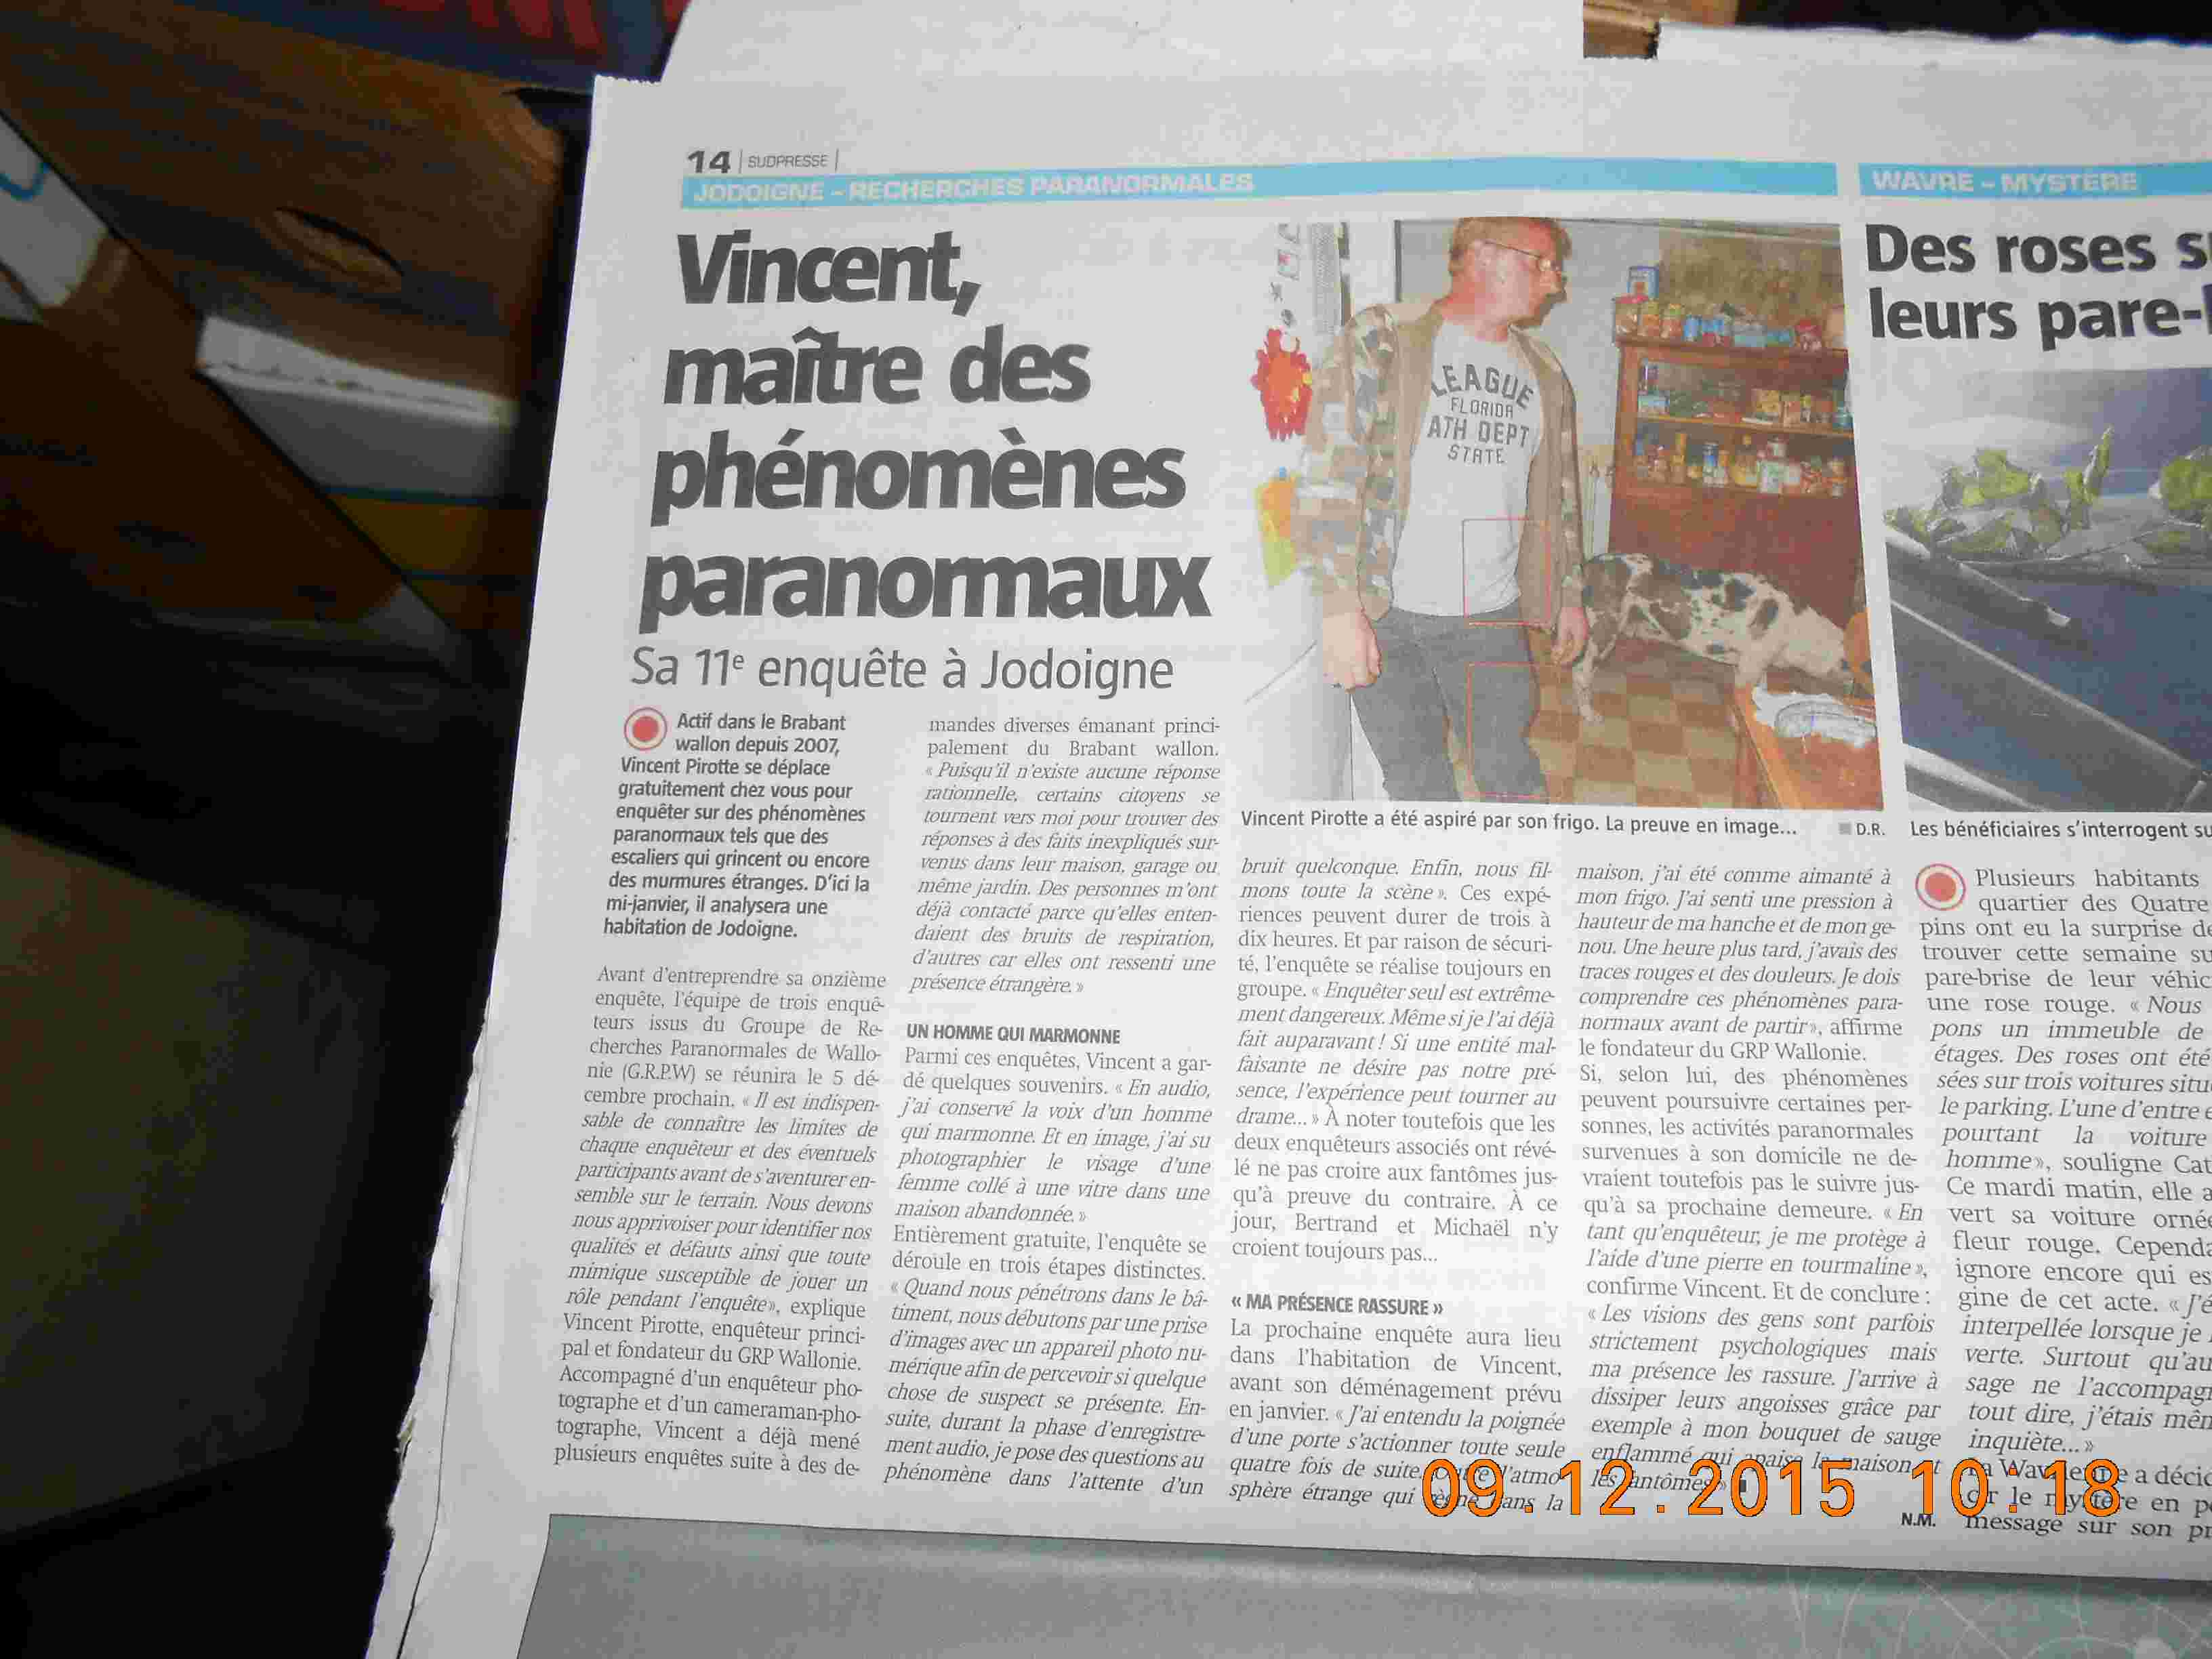 Interview avec la capitale.be Brabant Wallon le 25 novembre 2015 Dscn0516